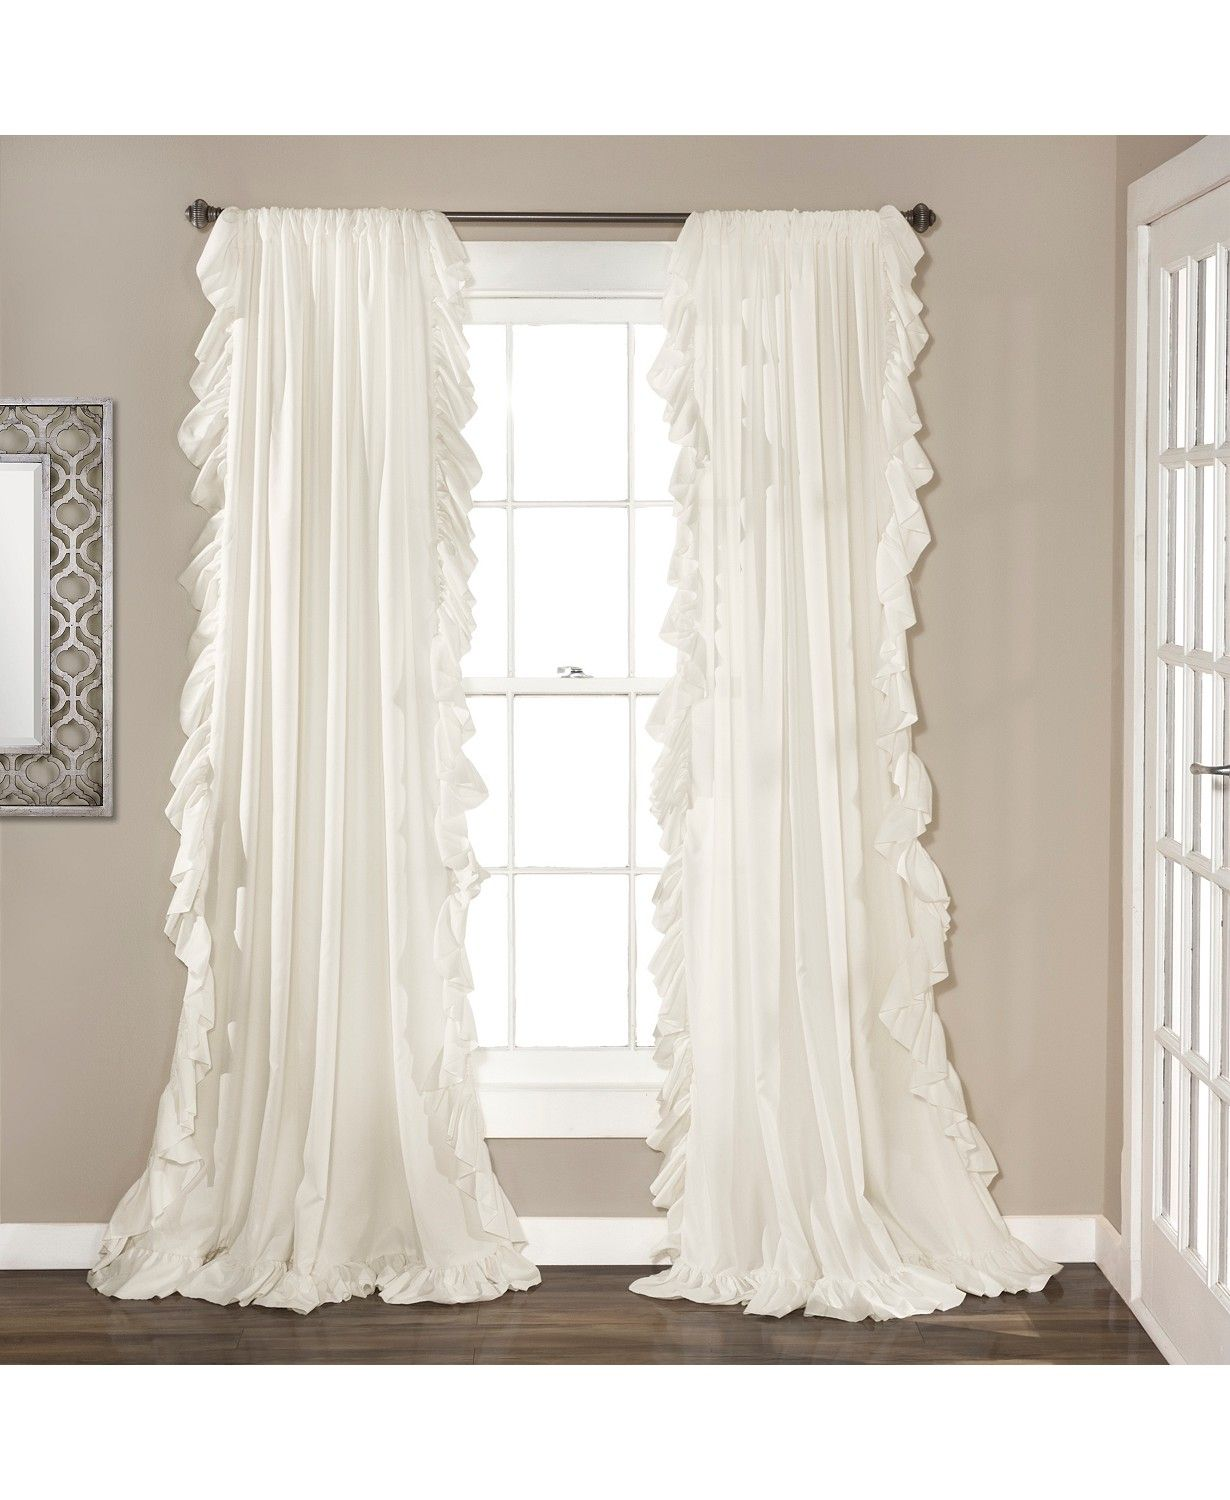 Lush Decor Reyna Window 54 X 95 Curtain Set Reviews Window